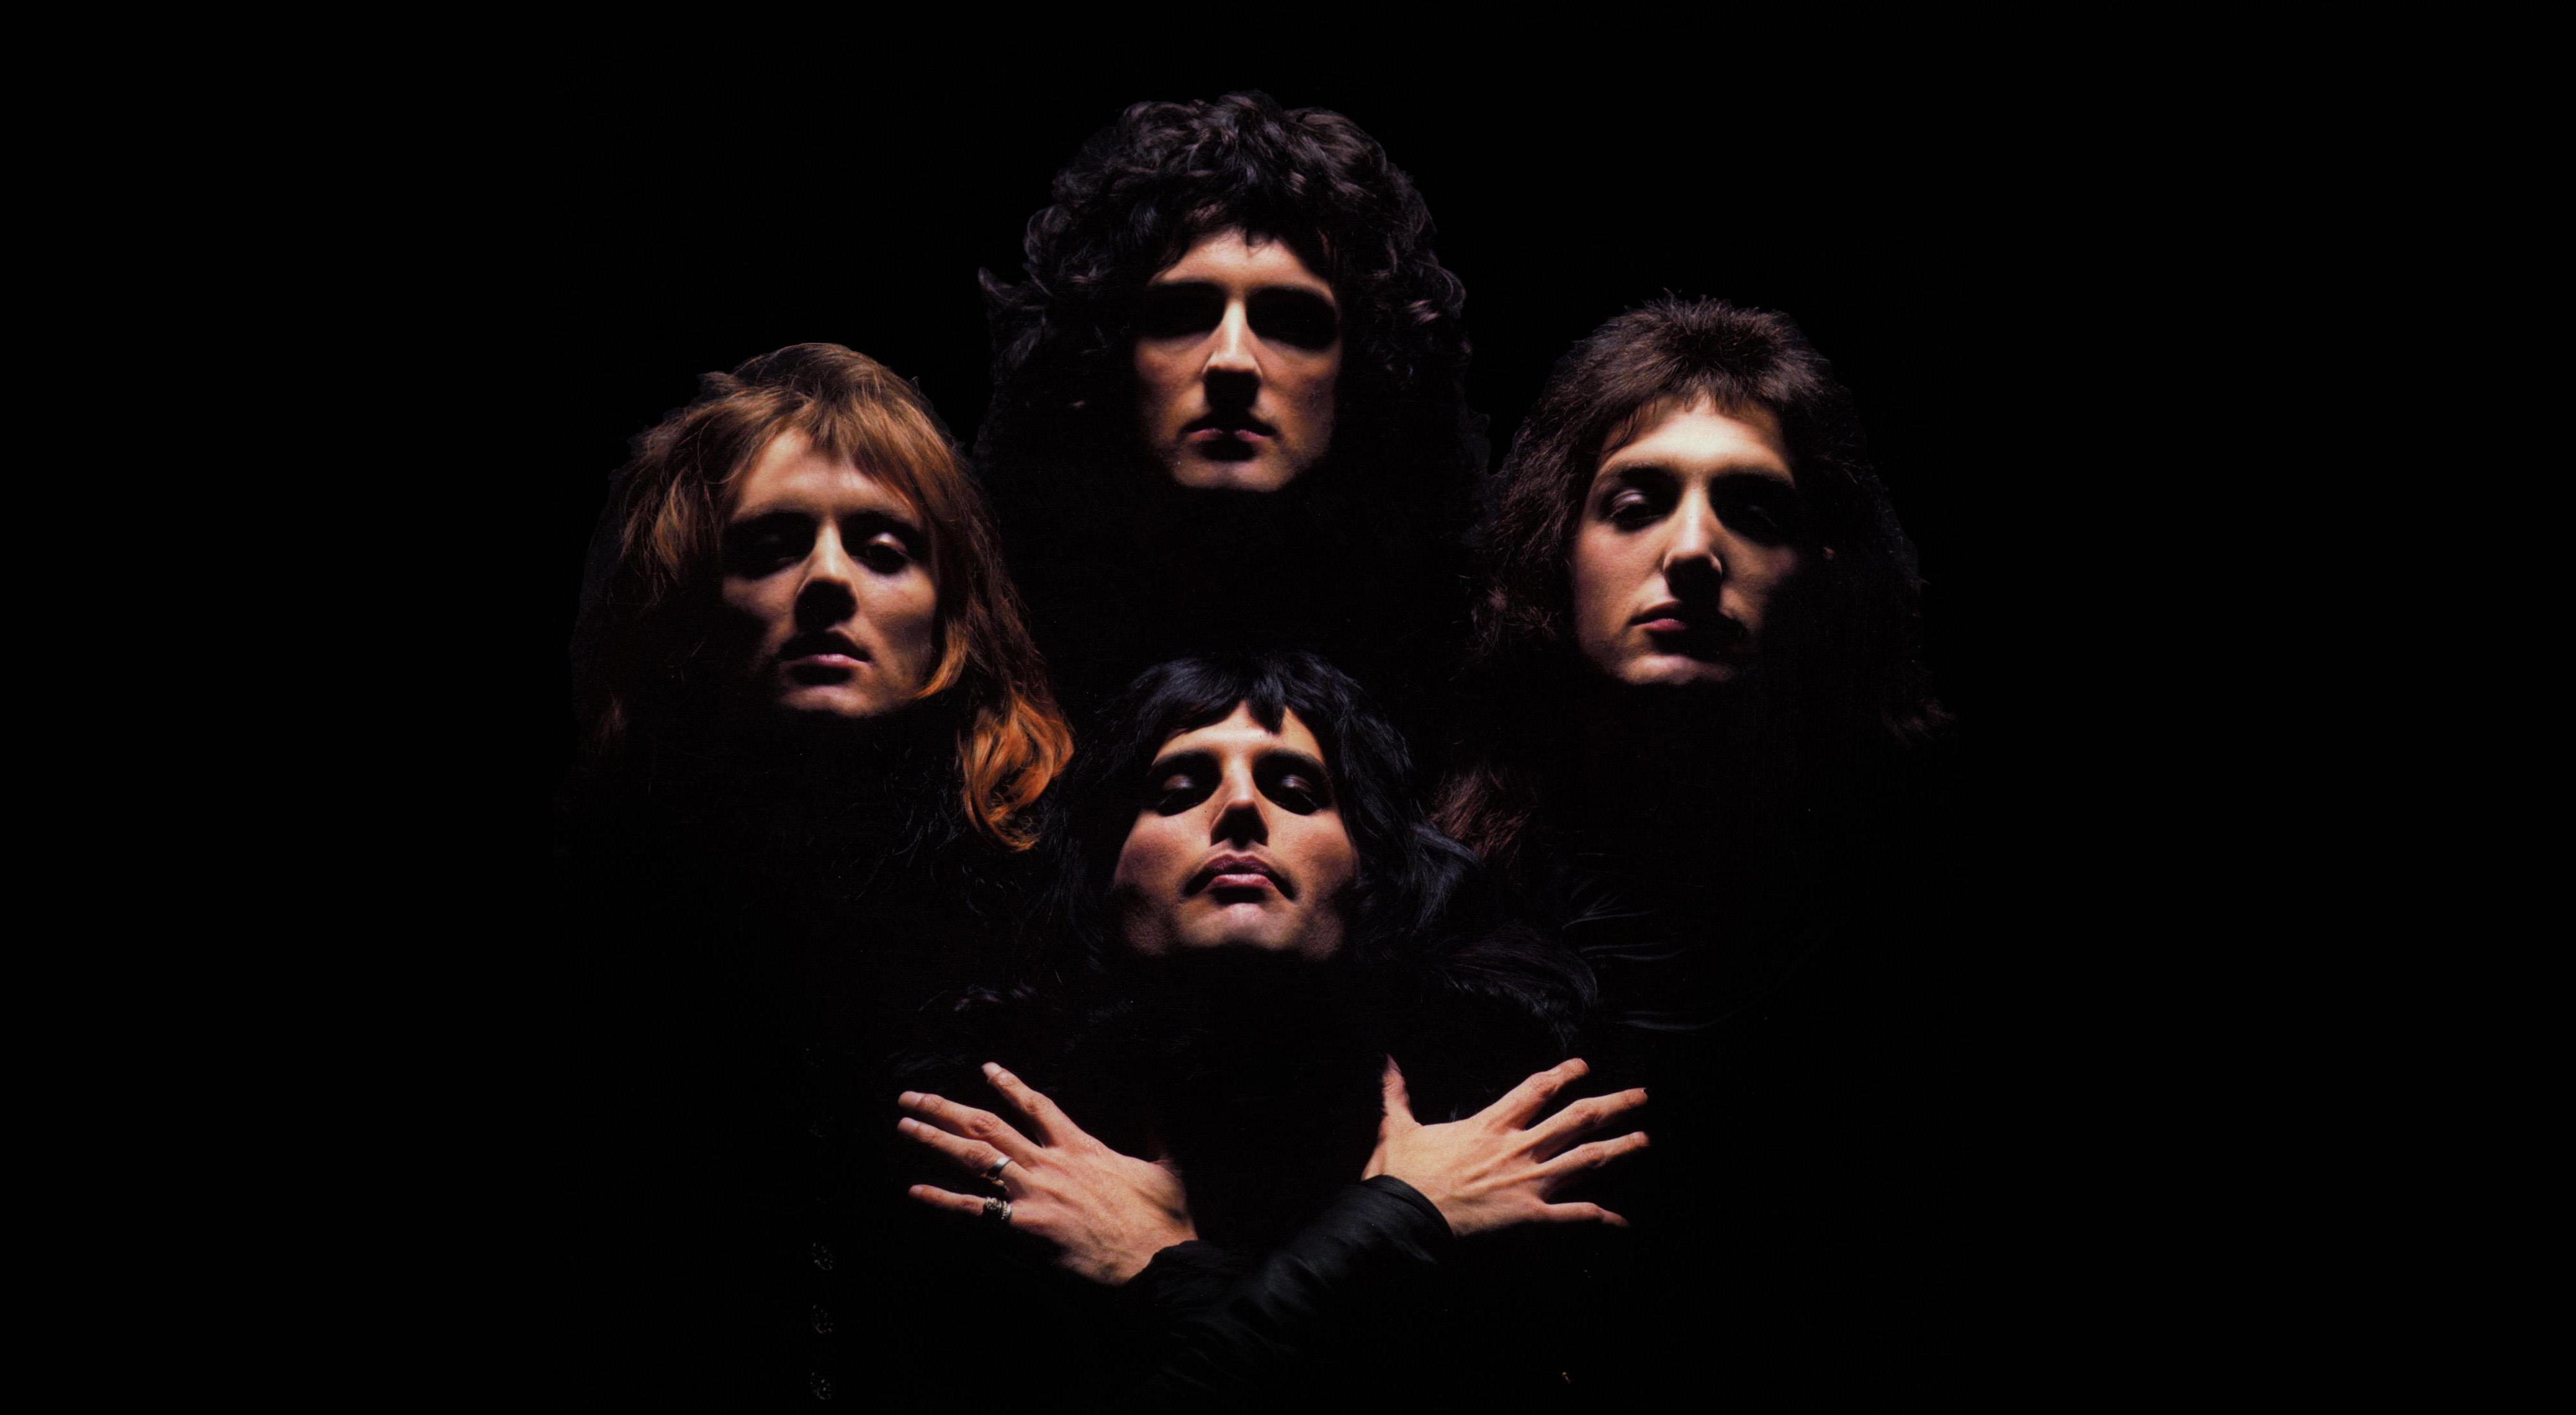 Bohemian Rhapsody is a song by the British rock band Queen It was written by Freddie Mercury for the bands 1975 album A Night at the Opera It is a sixminute